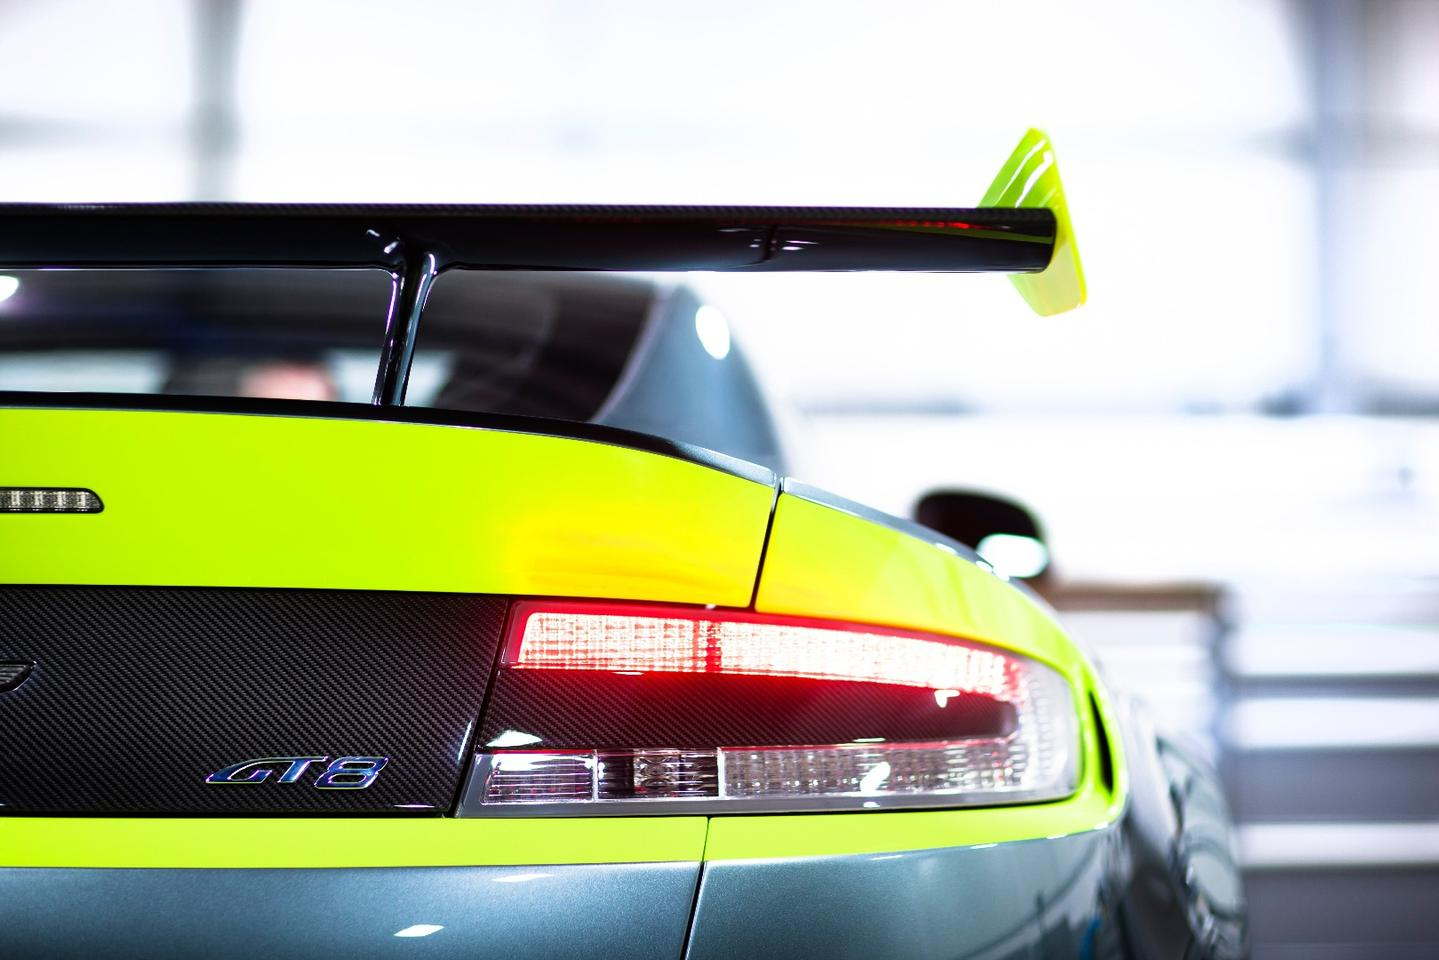 The yellow highlights are at odds with Aston Martin's usually restrained styling